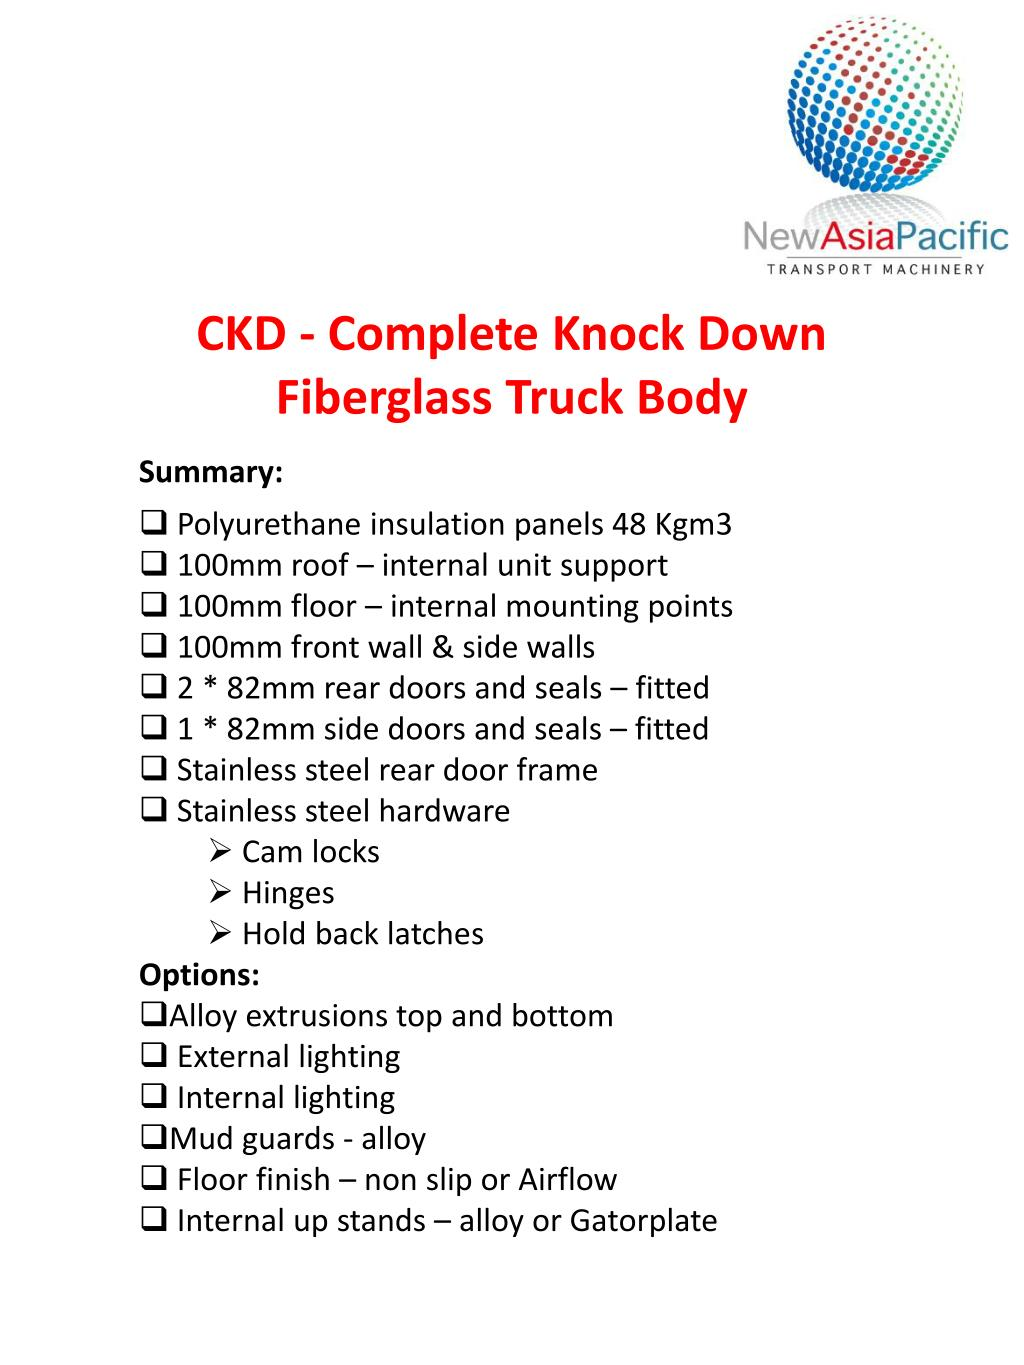 PPT - CKD - Complete Knock Down Fiberglass Truck Body PowerPoint